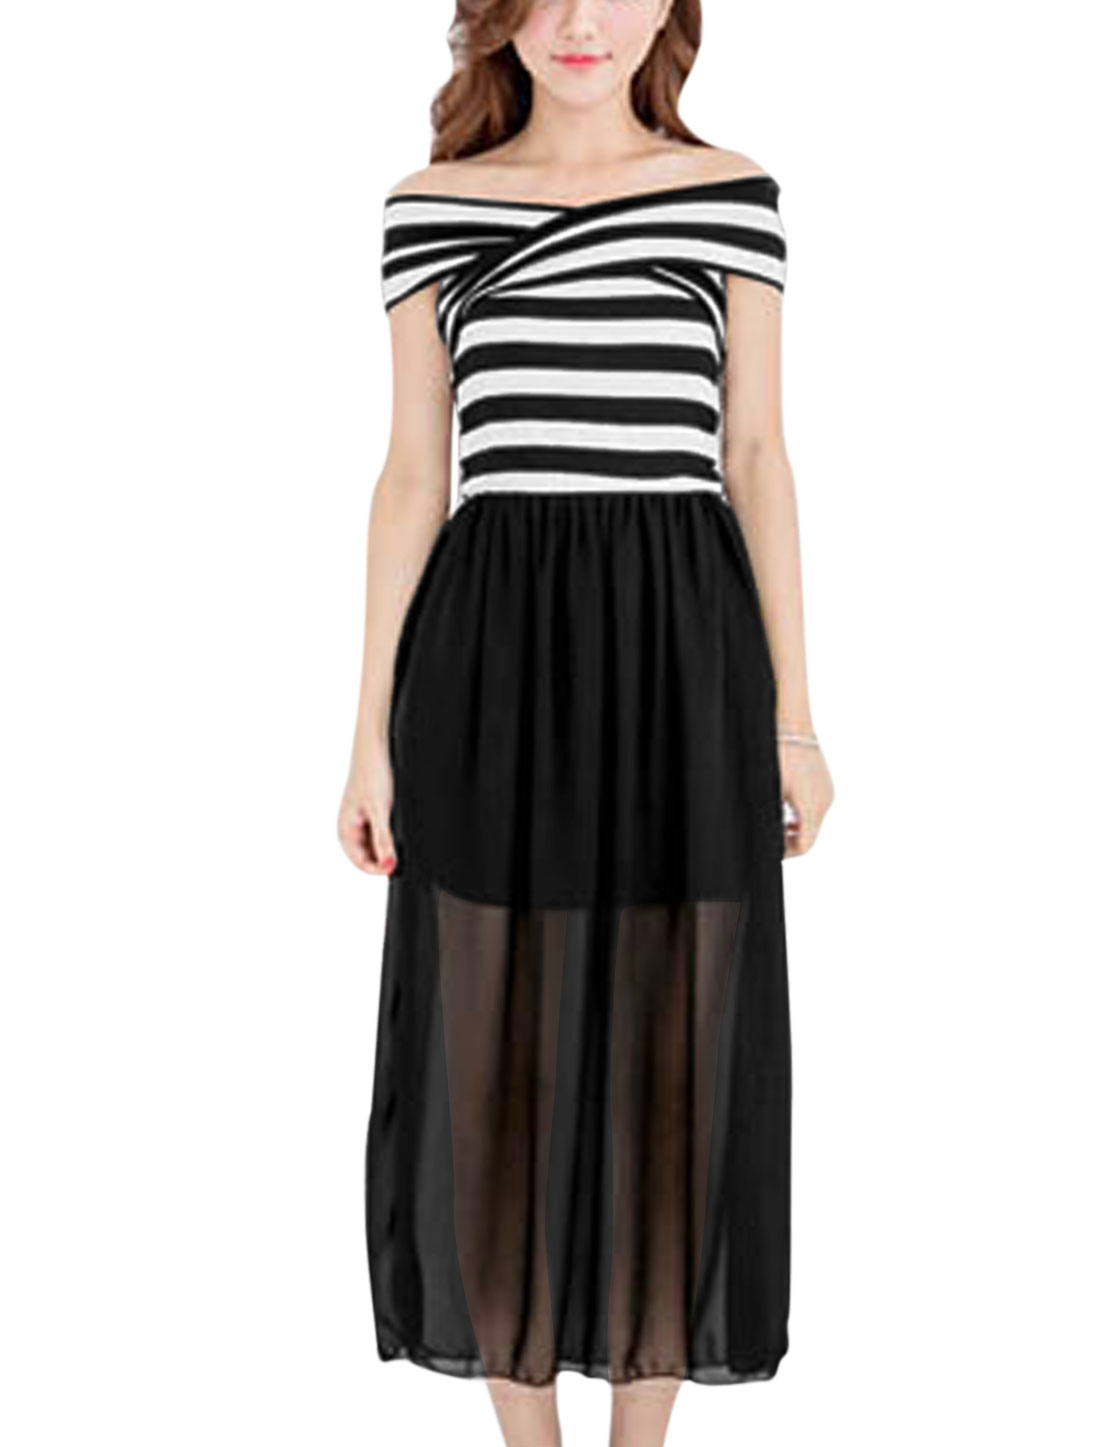 Lady Crossover Design Off Shoulder Chiffon Patched Stripes Dress Black White XS